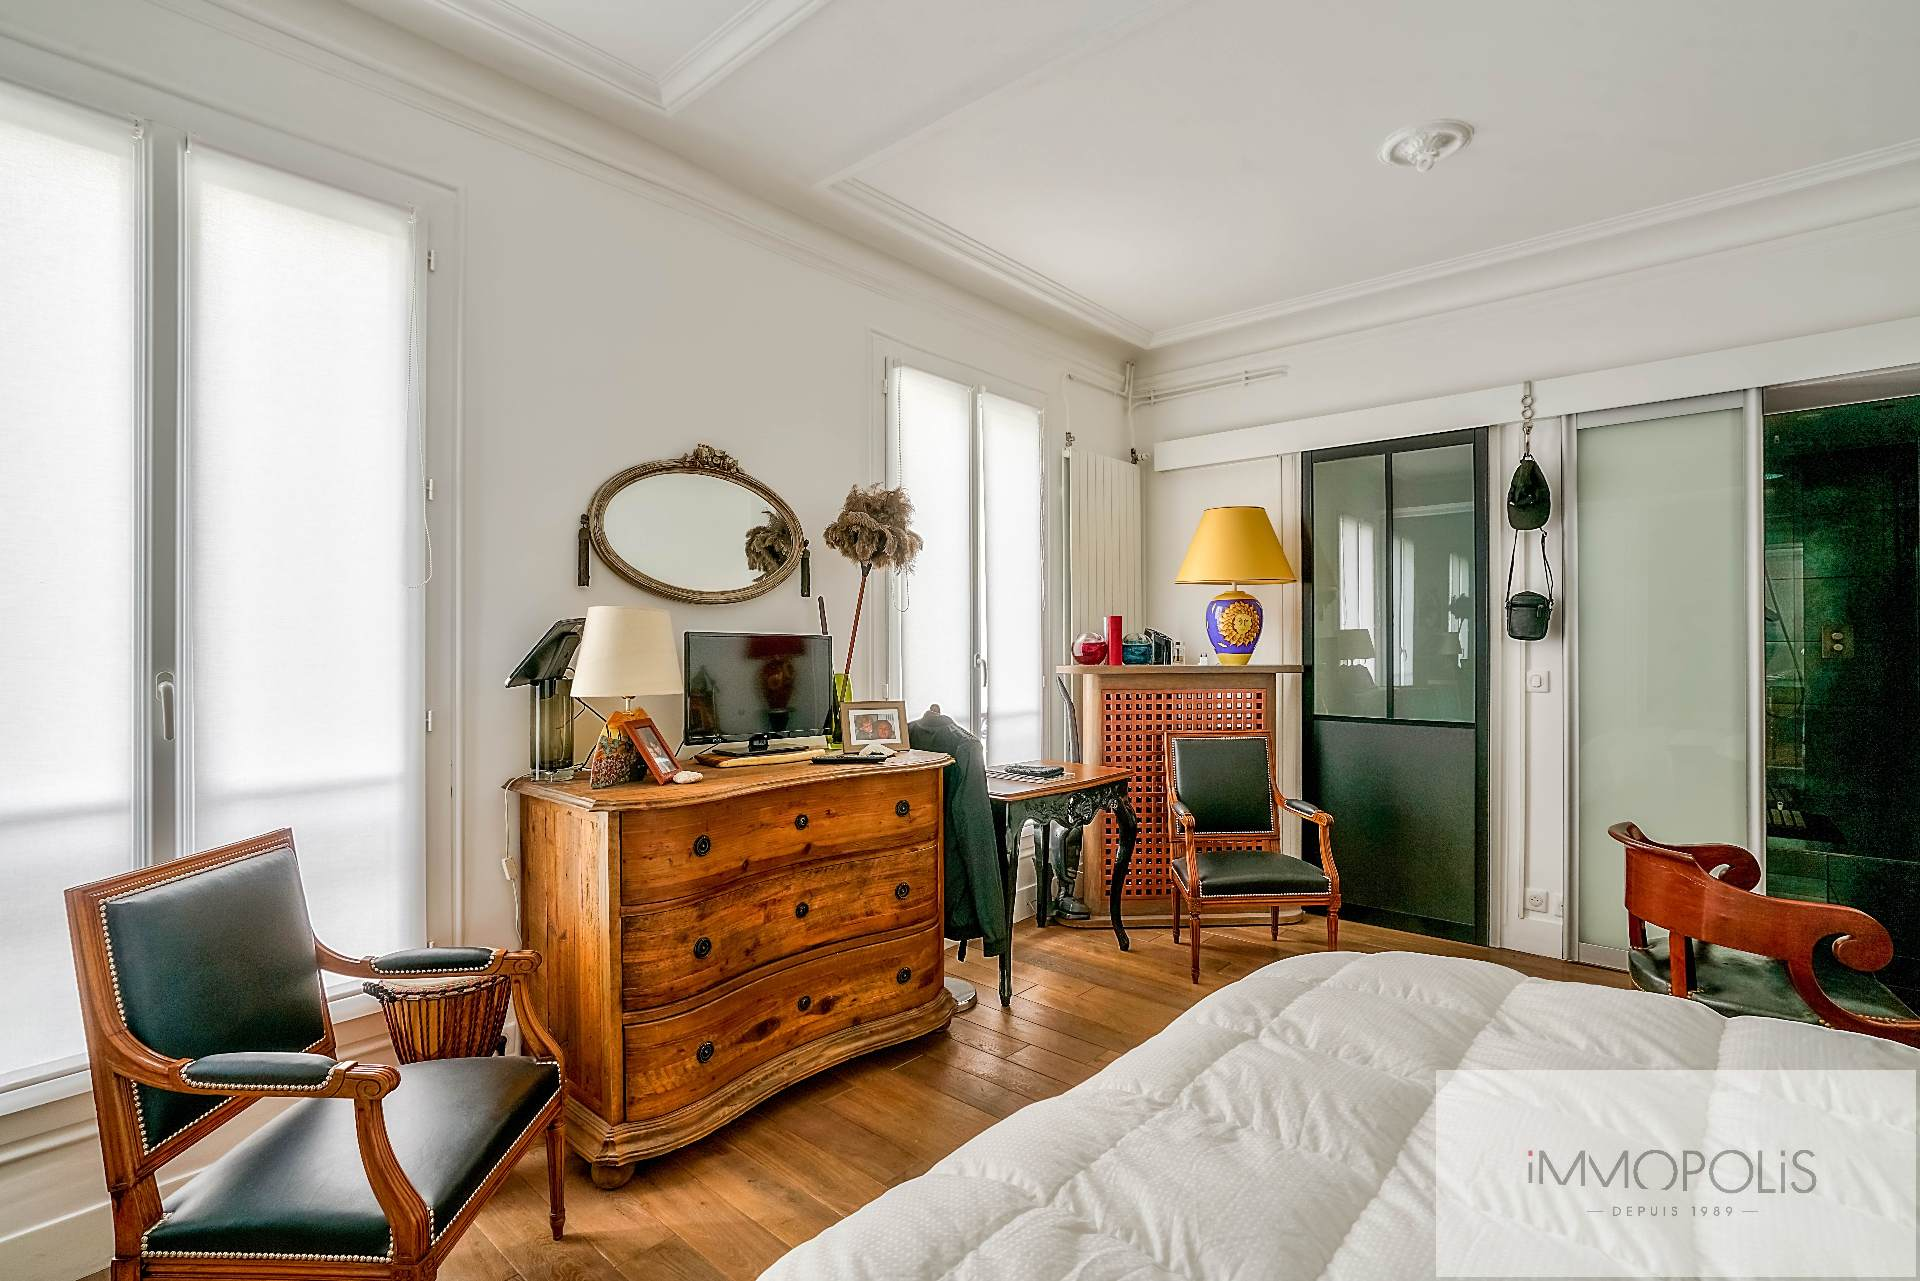 Superb 3 room apartment (currently 1 bedroom) in Montmartre, on the 3rd floor with elevator: great amenities! 4